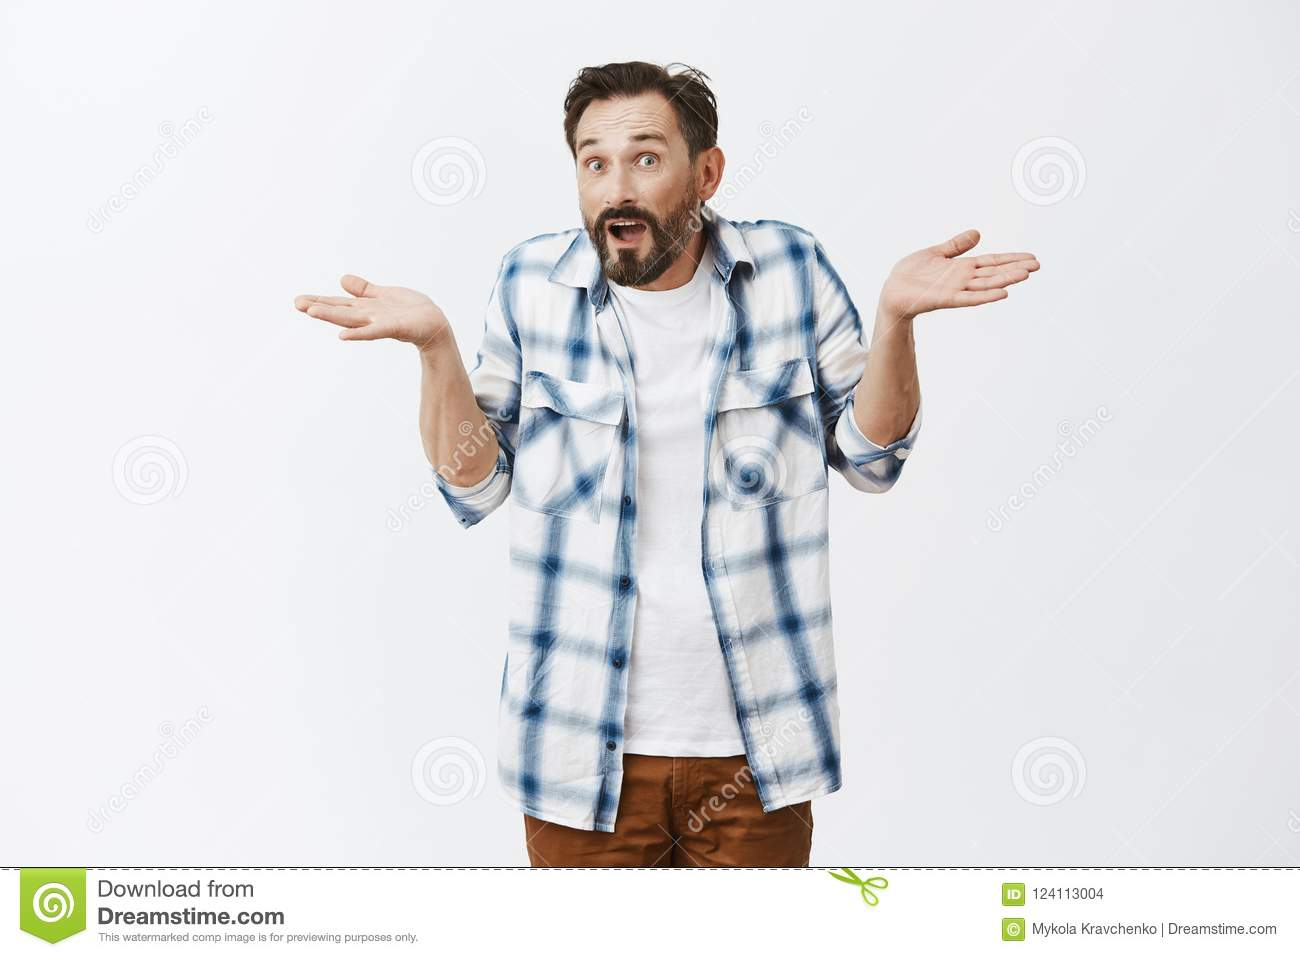 How should I know. Unaware confused adult guy with beard and moustache in casual checked shirt over t-shirt, shrugging